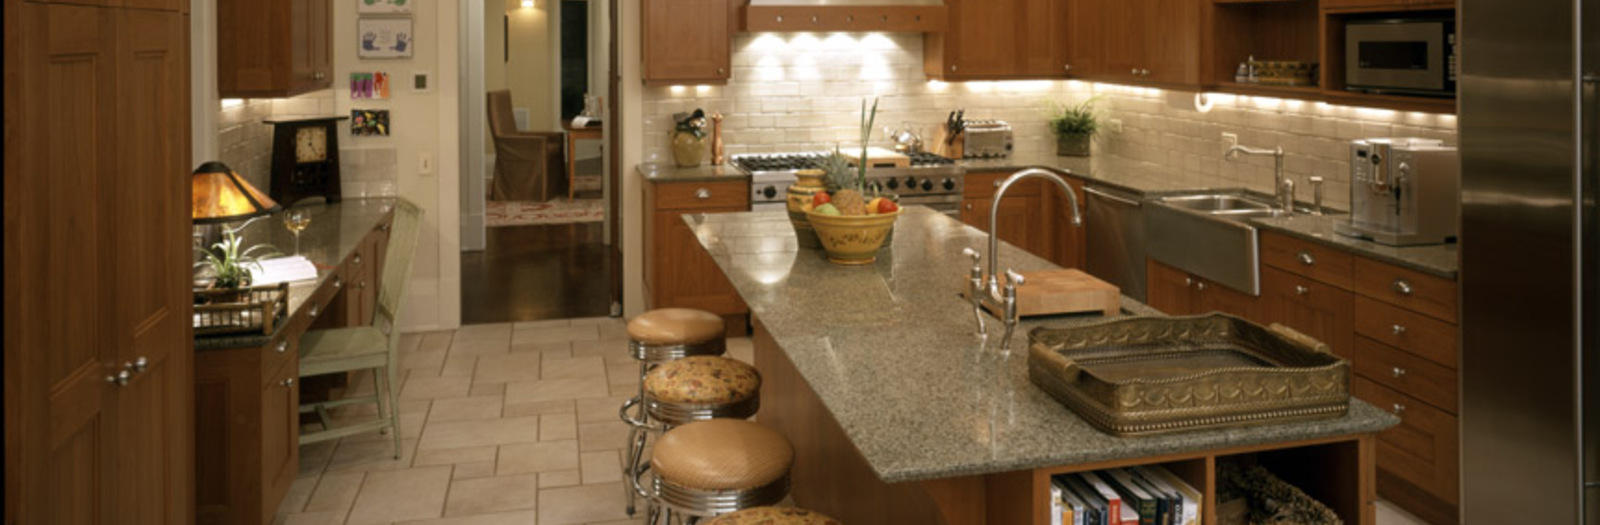 Traditional Kitchen with long kitchen counter with barstool seating